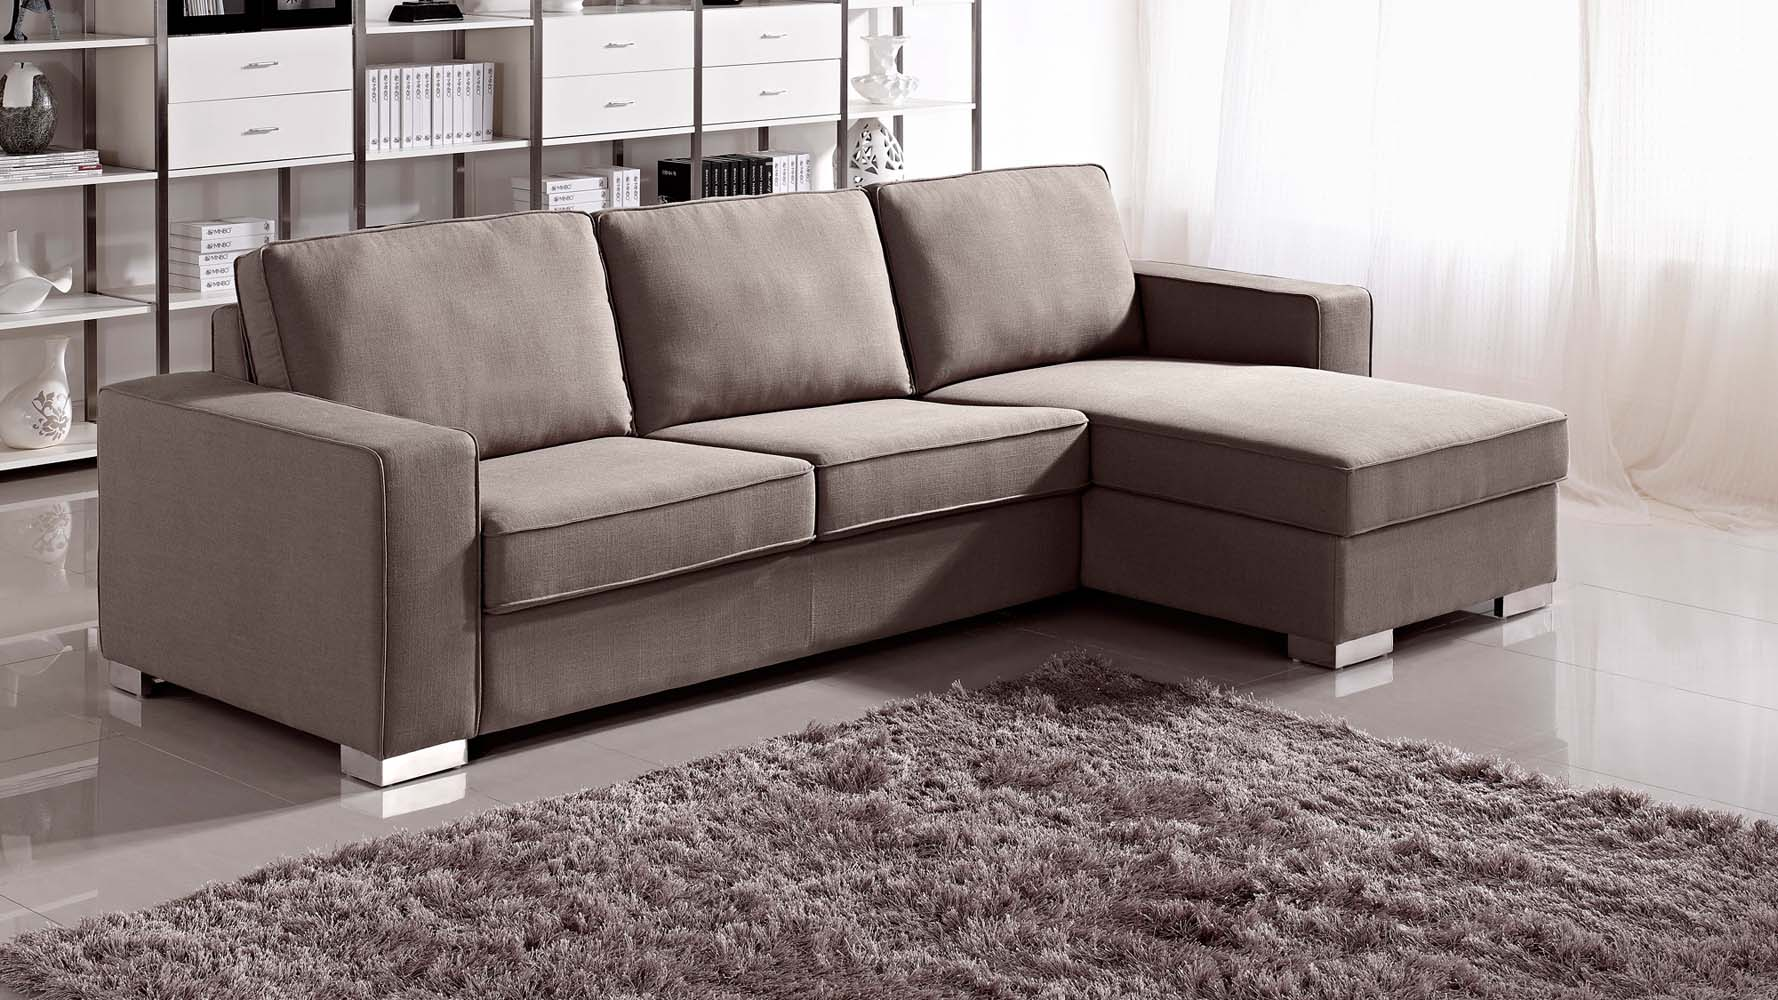 what can i use to clean my suede sofa price of set in philippines professional cleaning tips